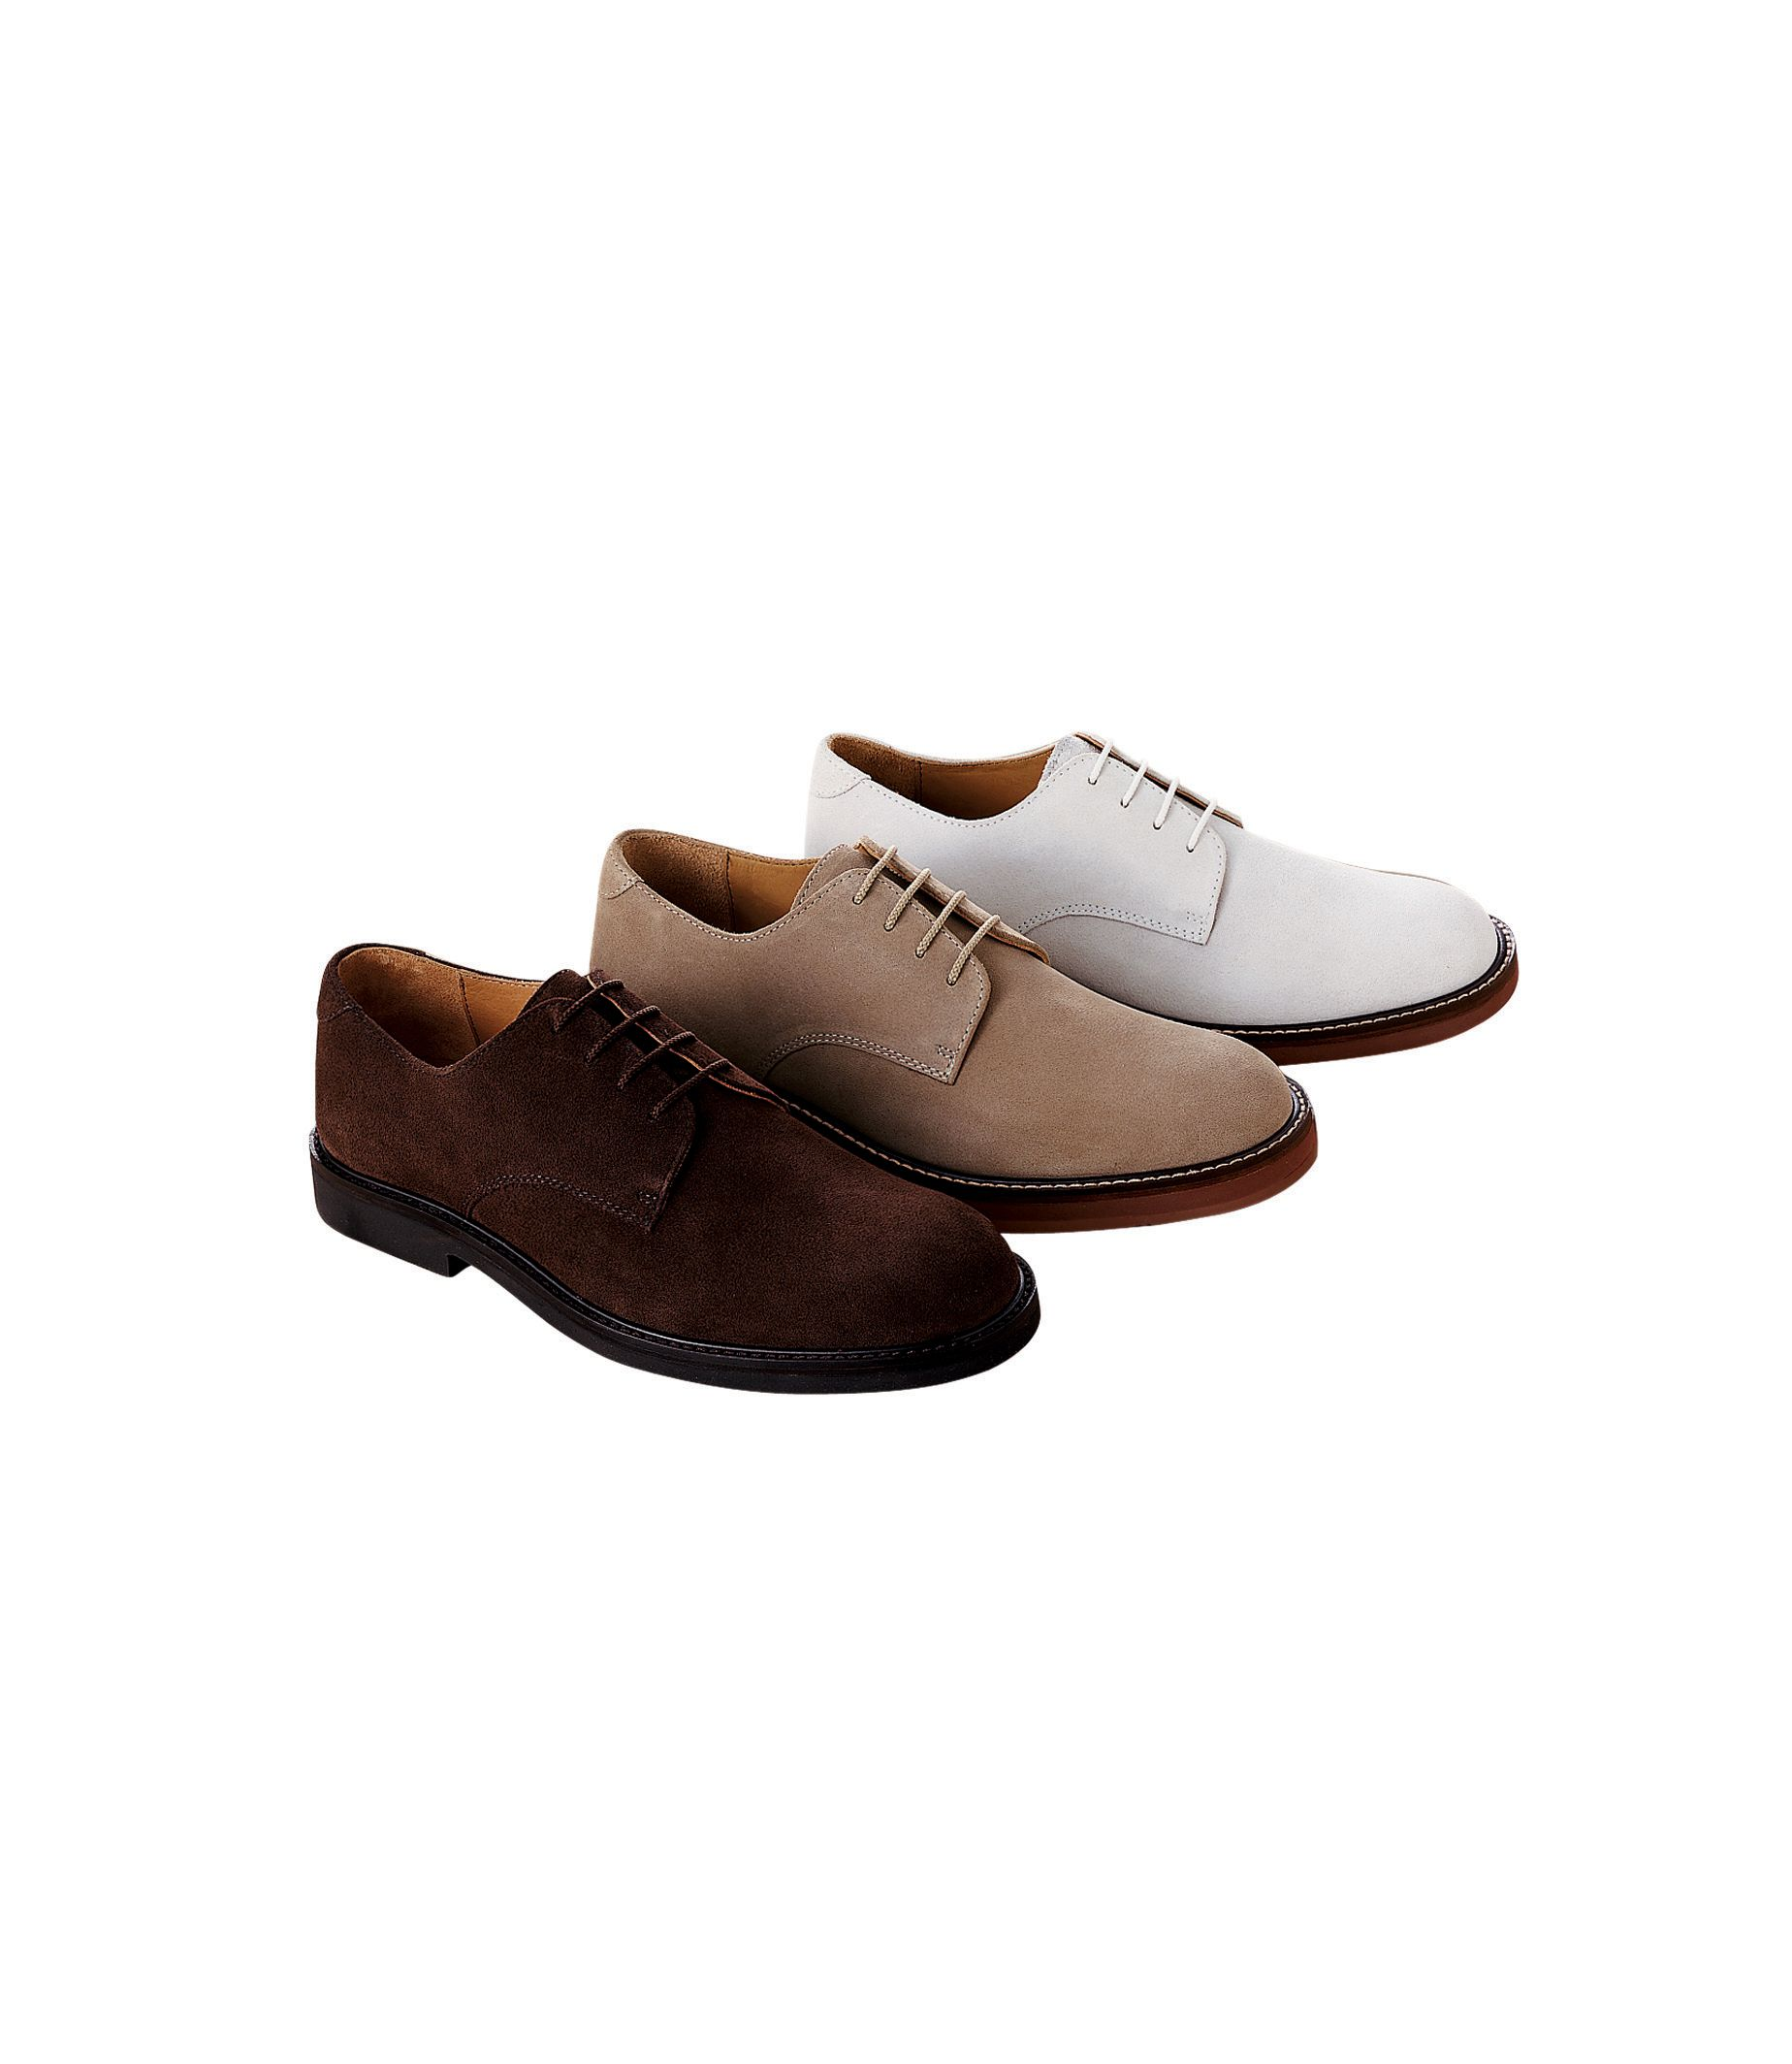 Classic Buck Shoe by Jos. A. Bank